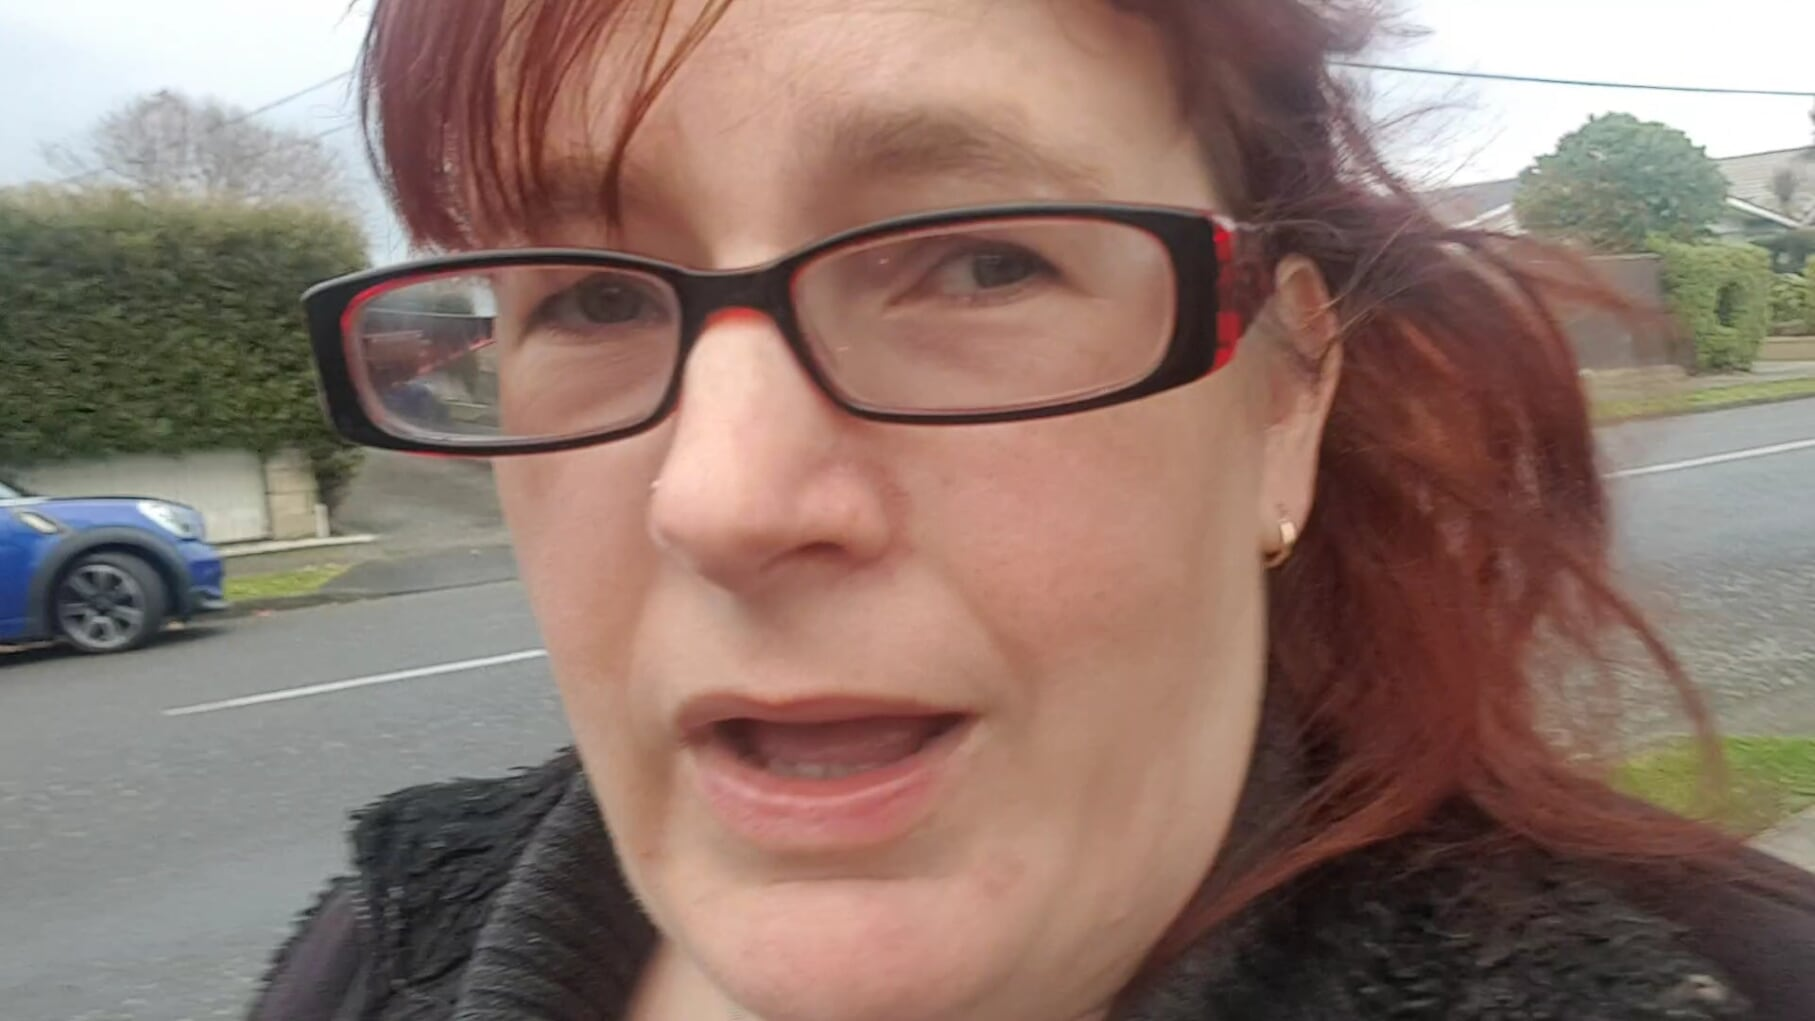 woman looking into the camera wearing glasses. She is outside in a street with a road in the background.